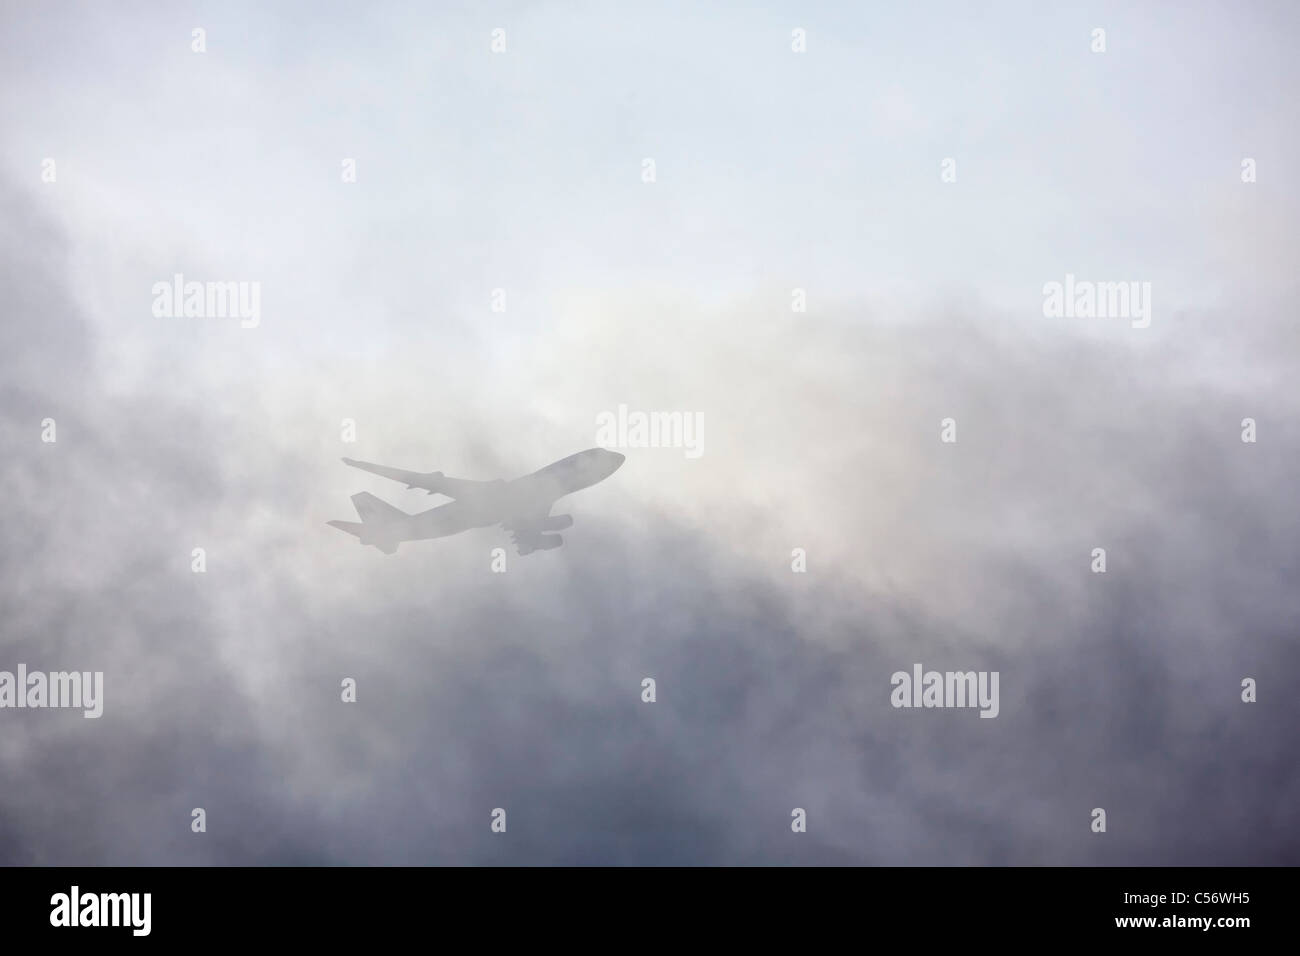 The Netherlands, Weesp, Airplane flying through clouds. - Stock Image